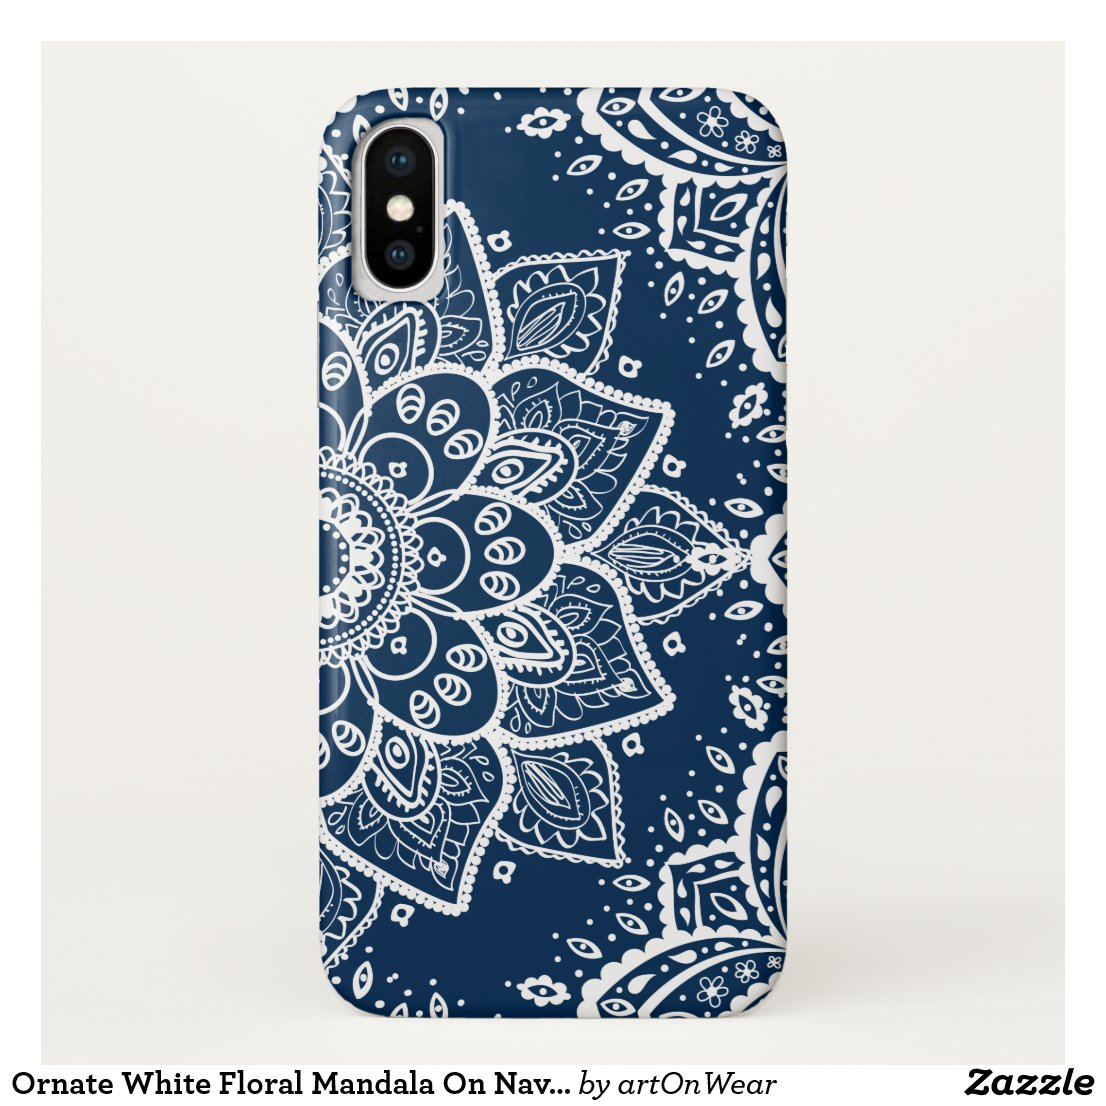 Ornate White Floral Mandala On Navy Blue